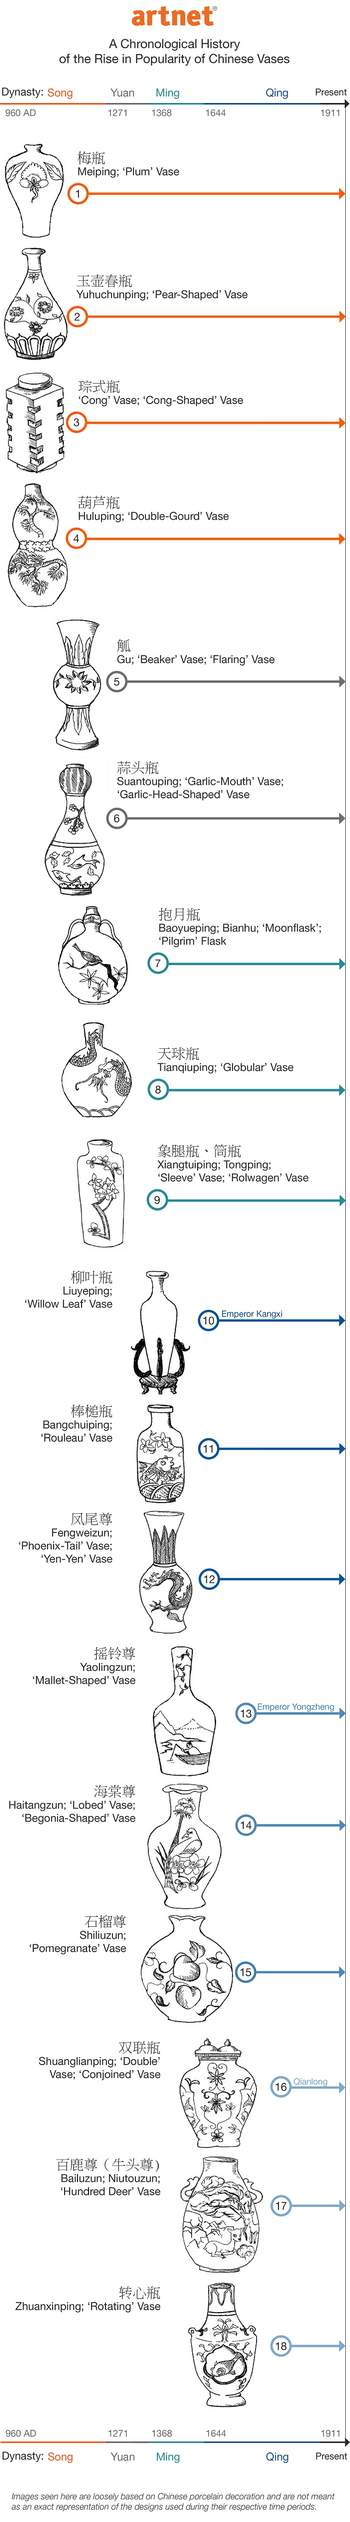 names-of-chinese-vase-shapes